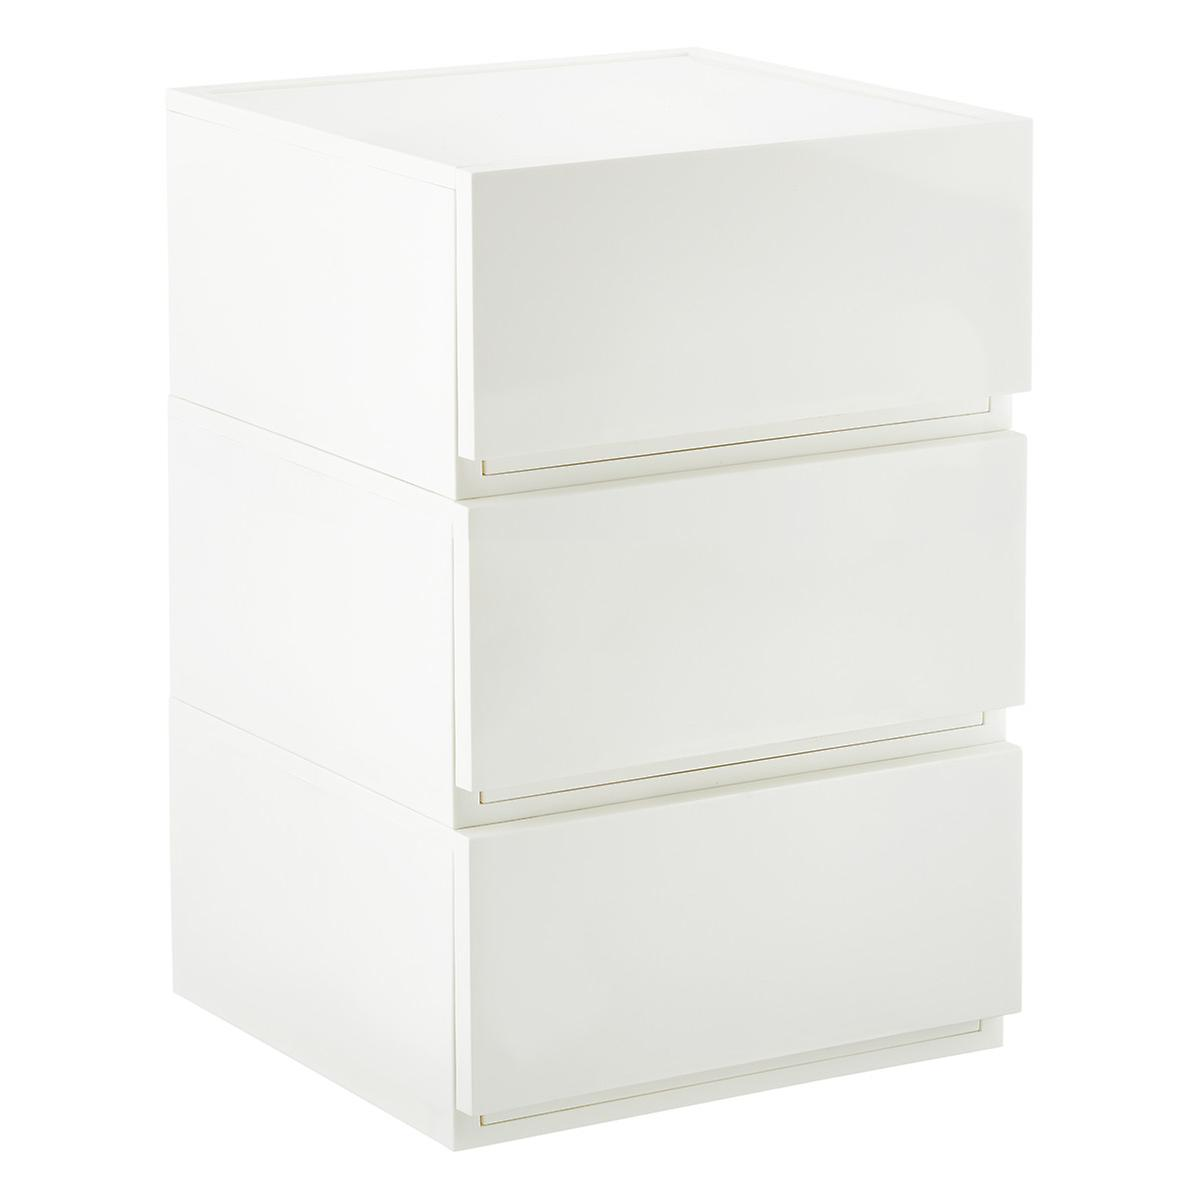 modular full light d cabinet stationary gray x h product drawers stanley grainger w height drawer vidmar